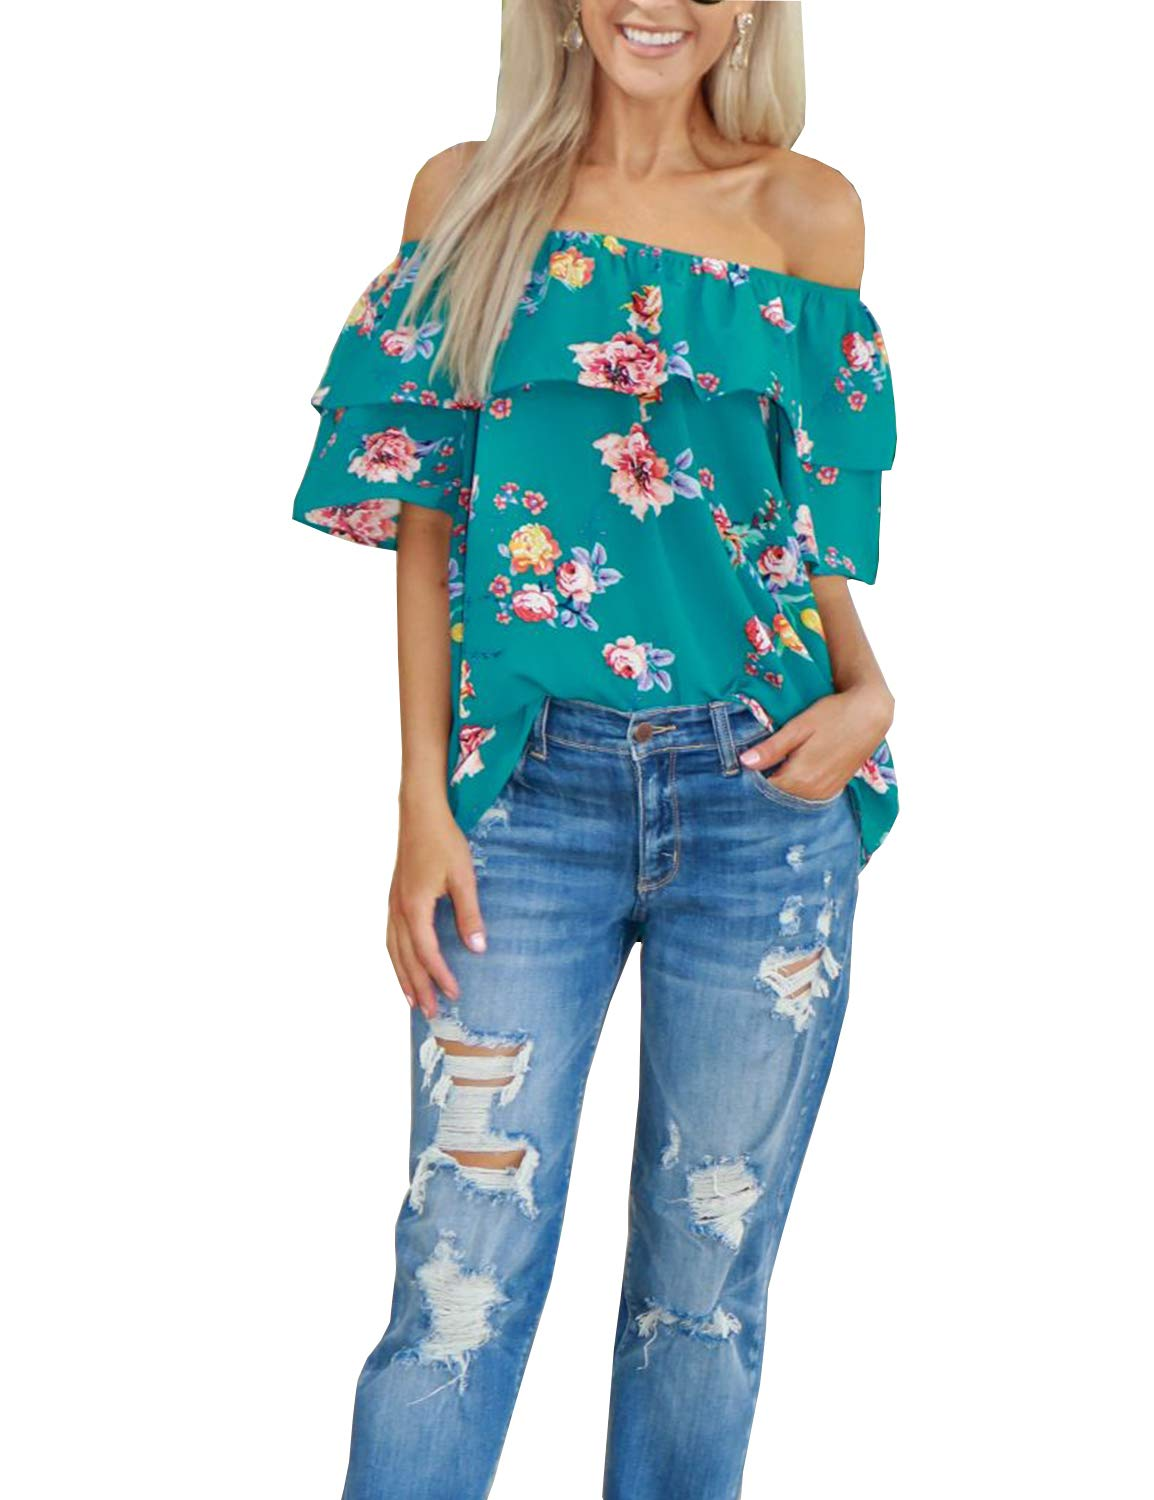 Blooming Jelly Women's Off Shoulder Short Sleeve Floral Printed Ruffle Top T Shirt Green